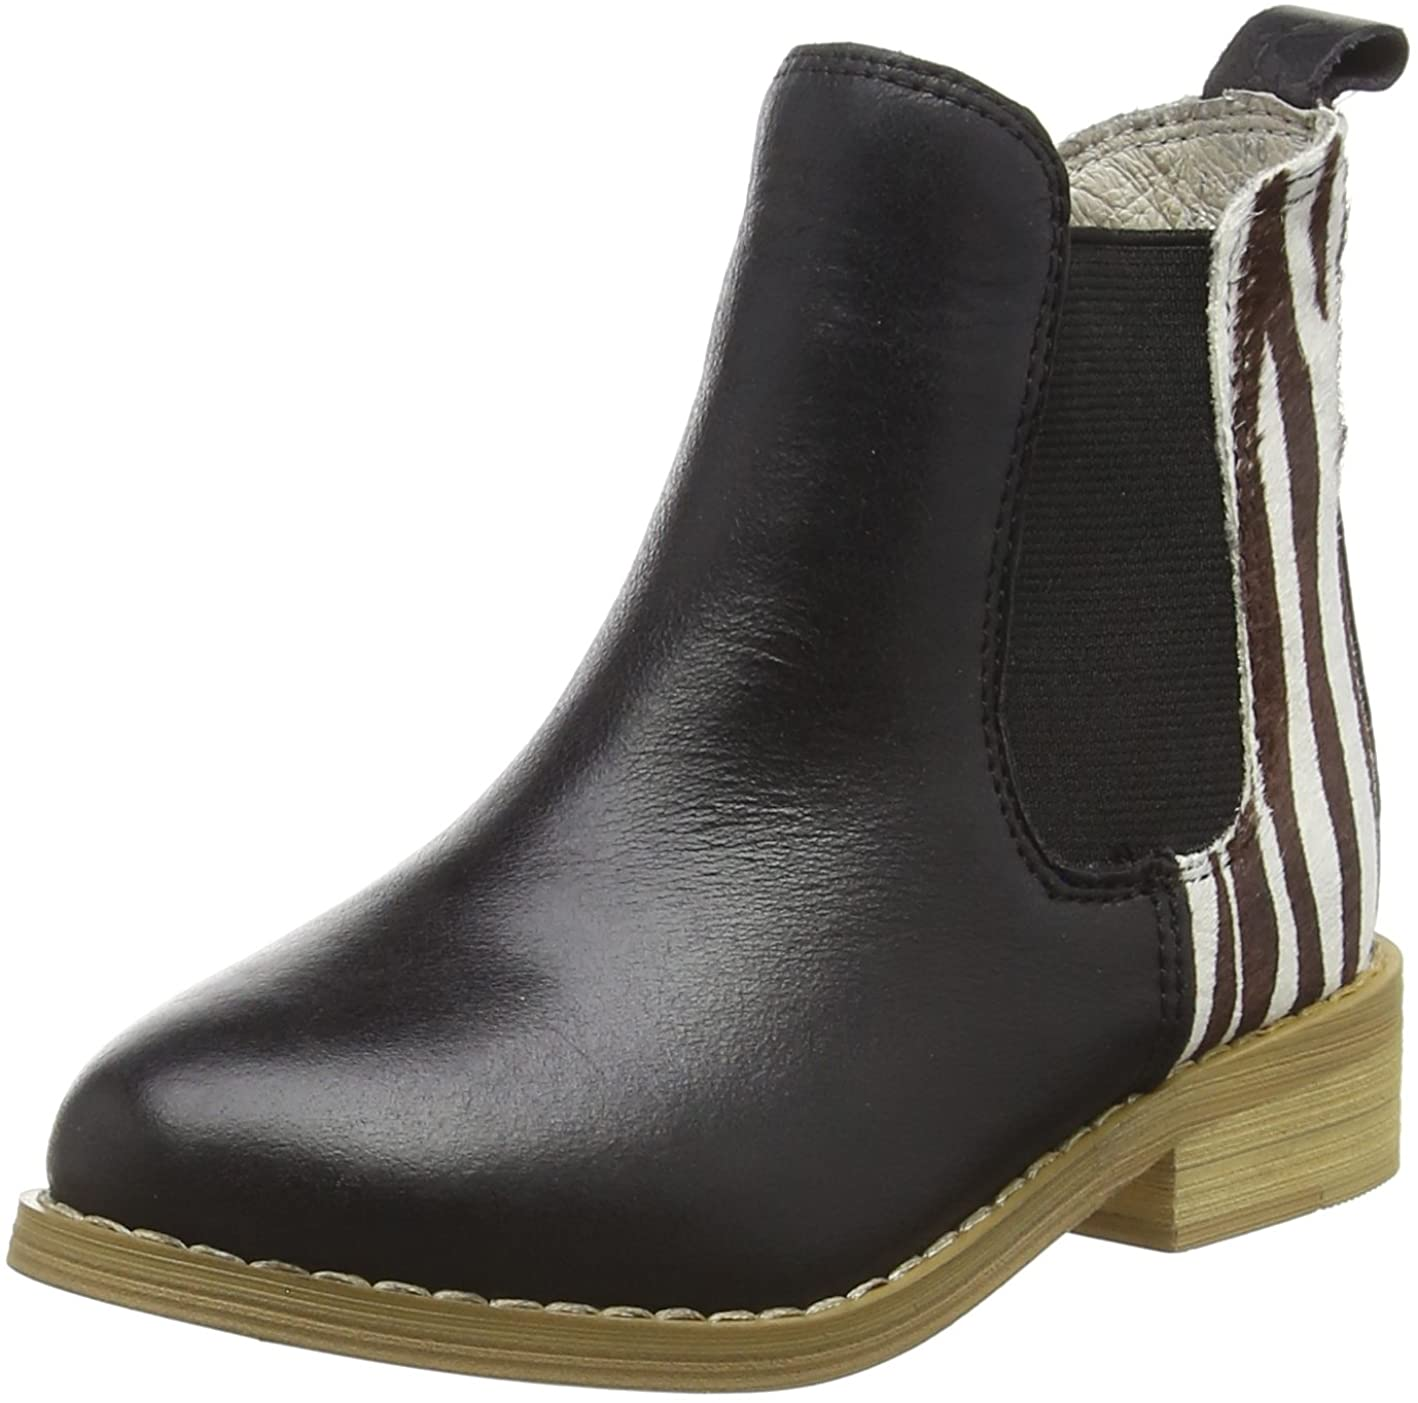 Joules Girls Chelsea Boot